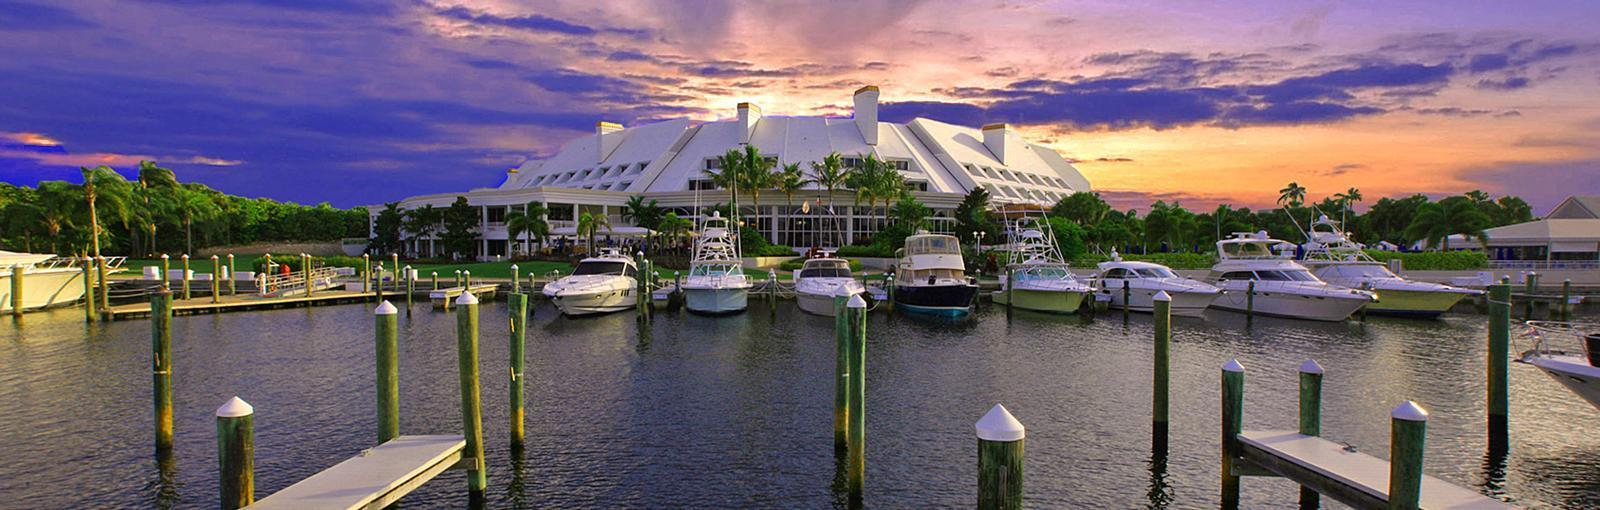 Admirals Cove Homes For Sale Jupiter Waterfront Real Estate